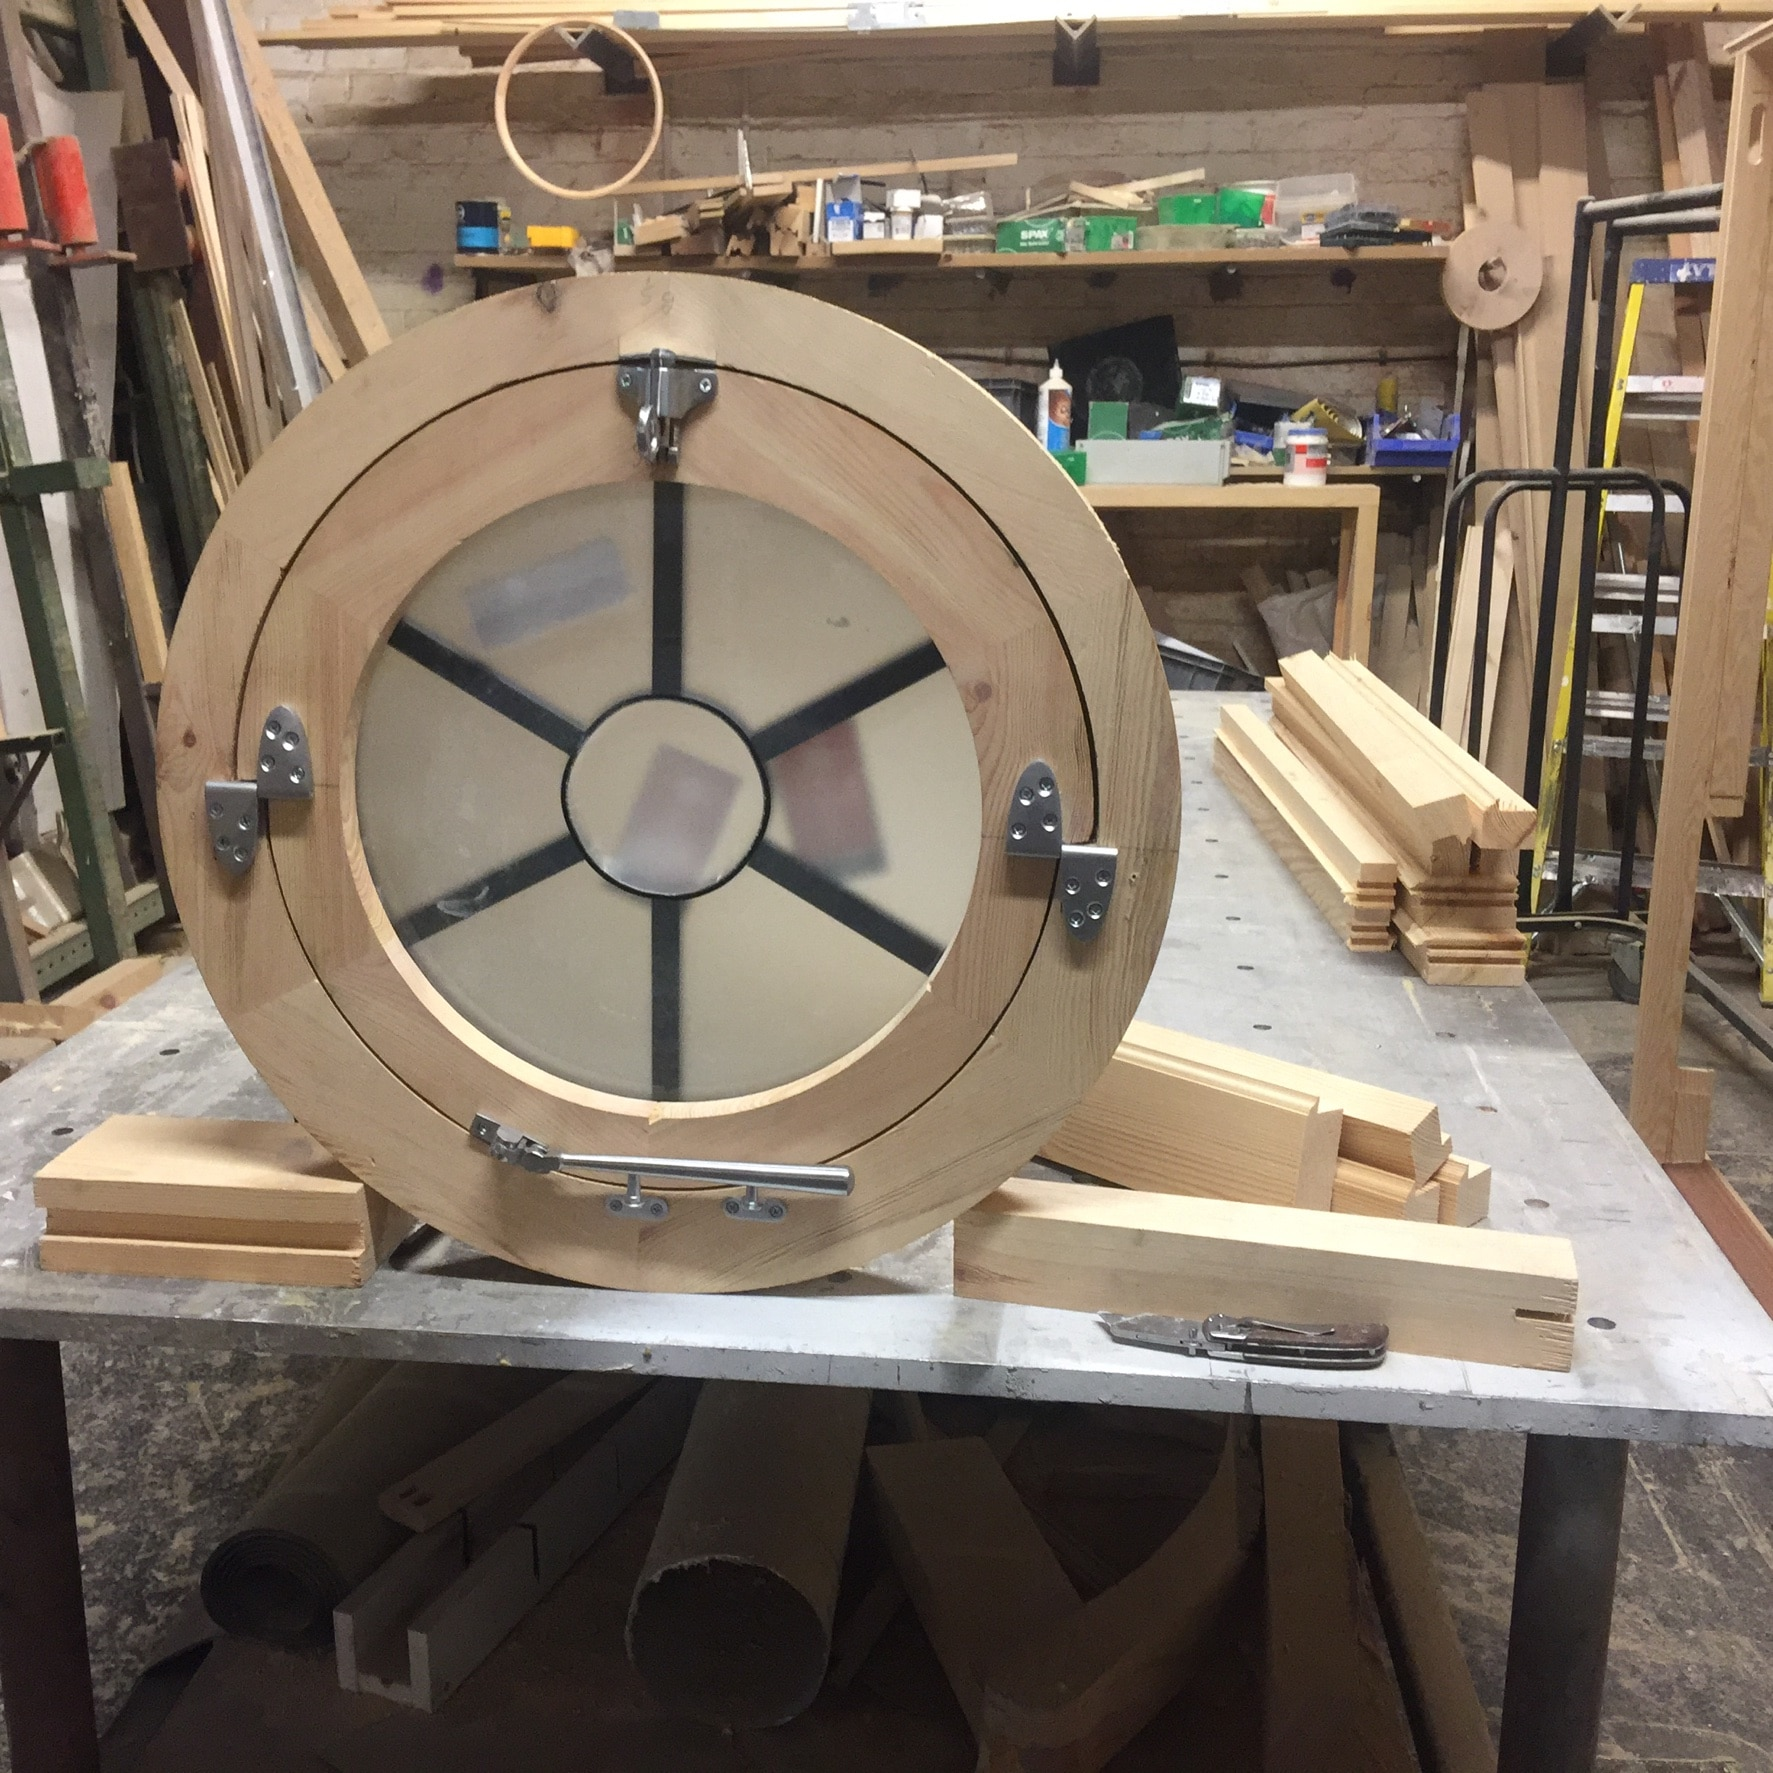 Round window in production.